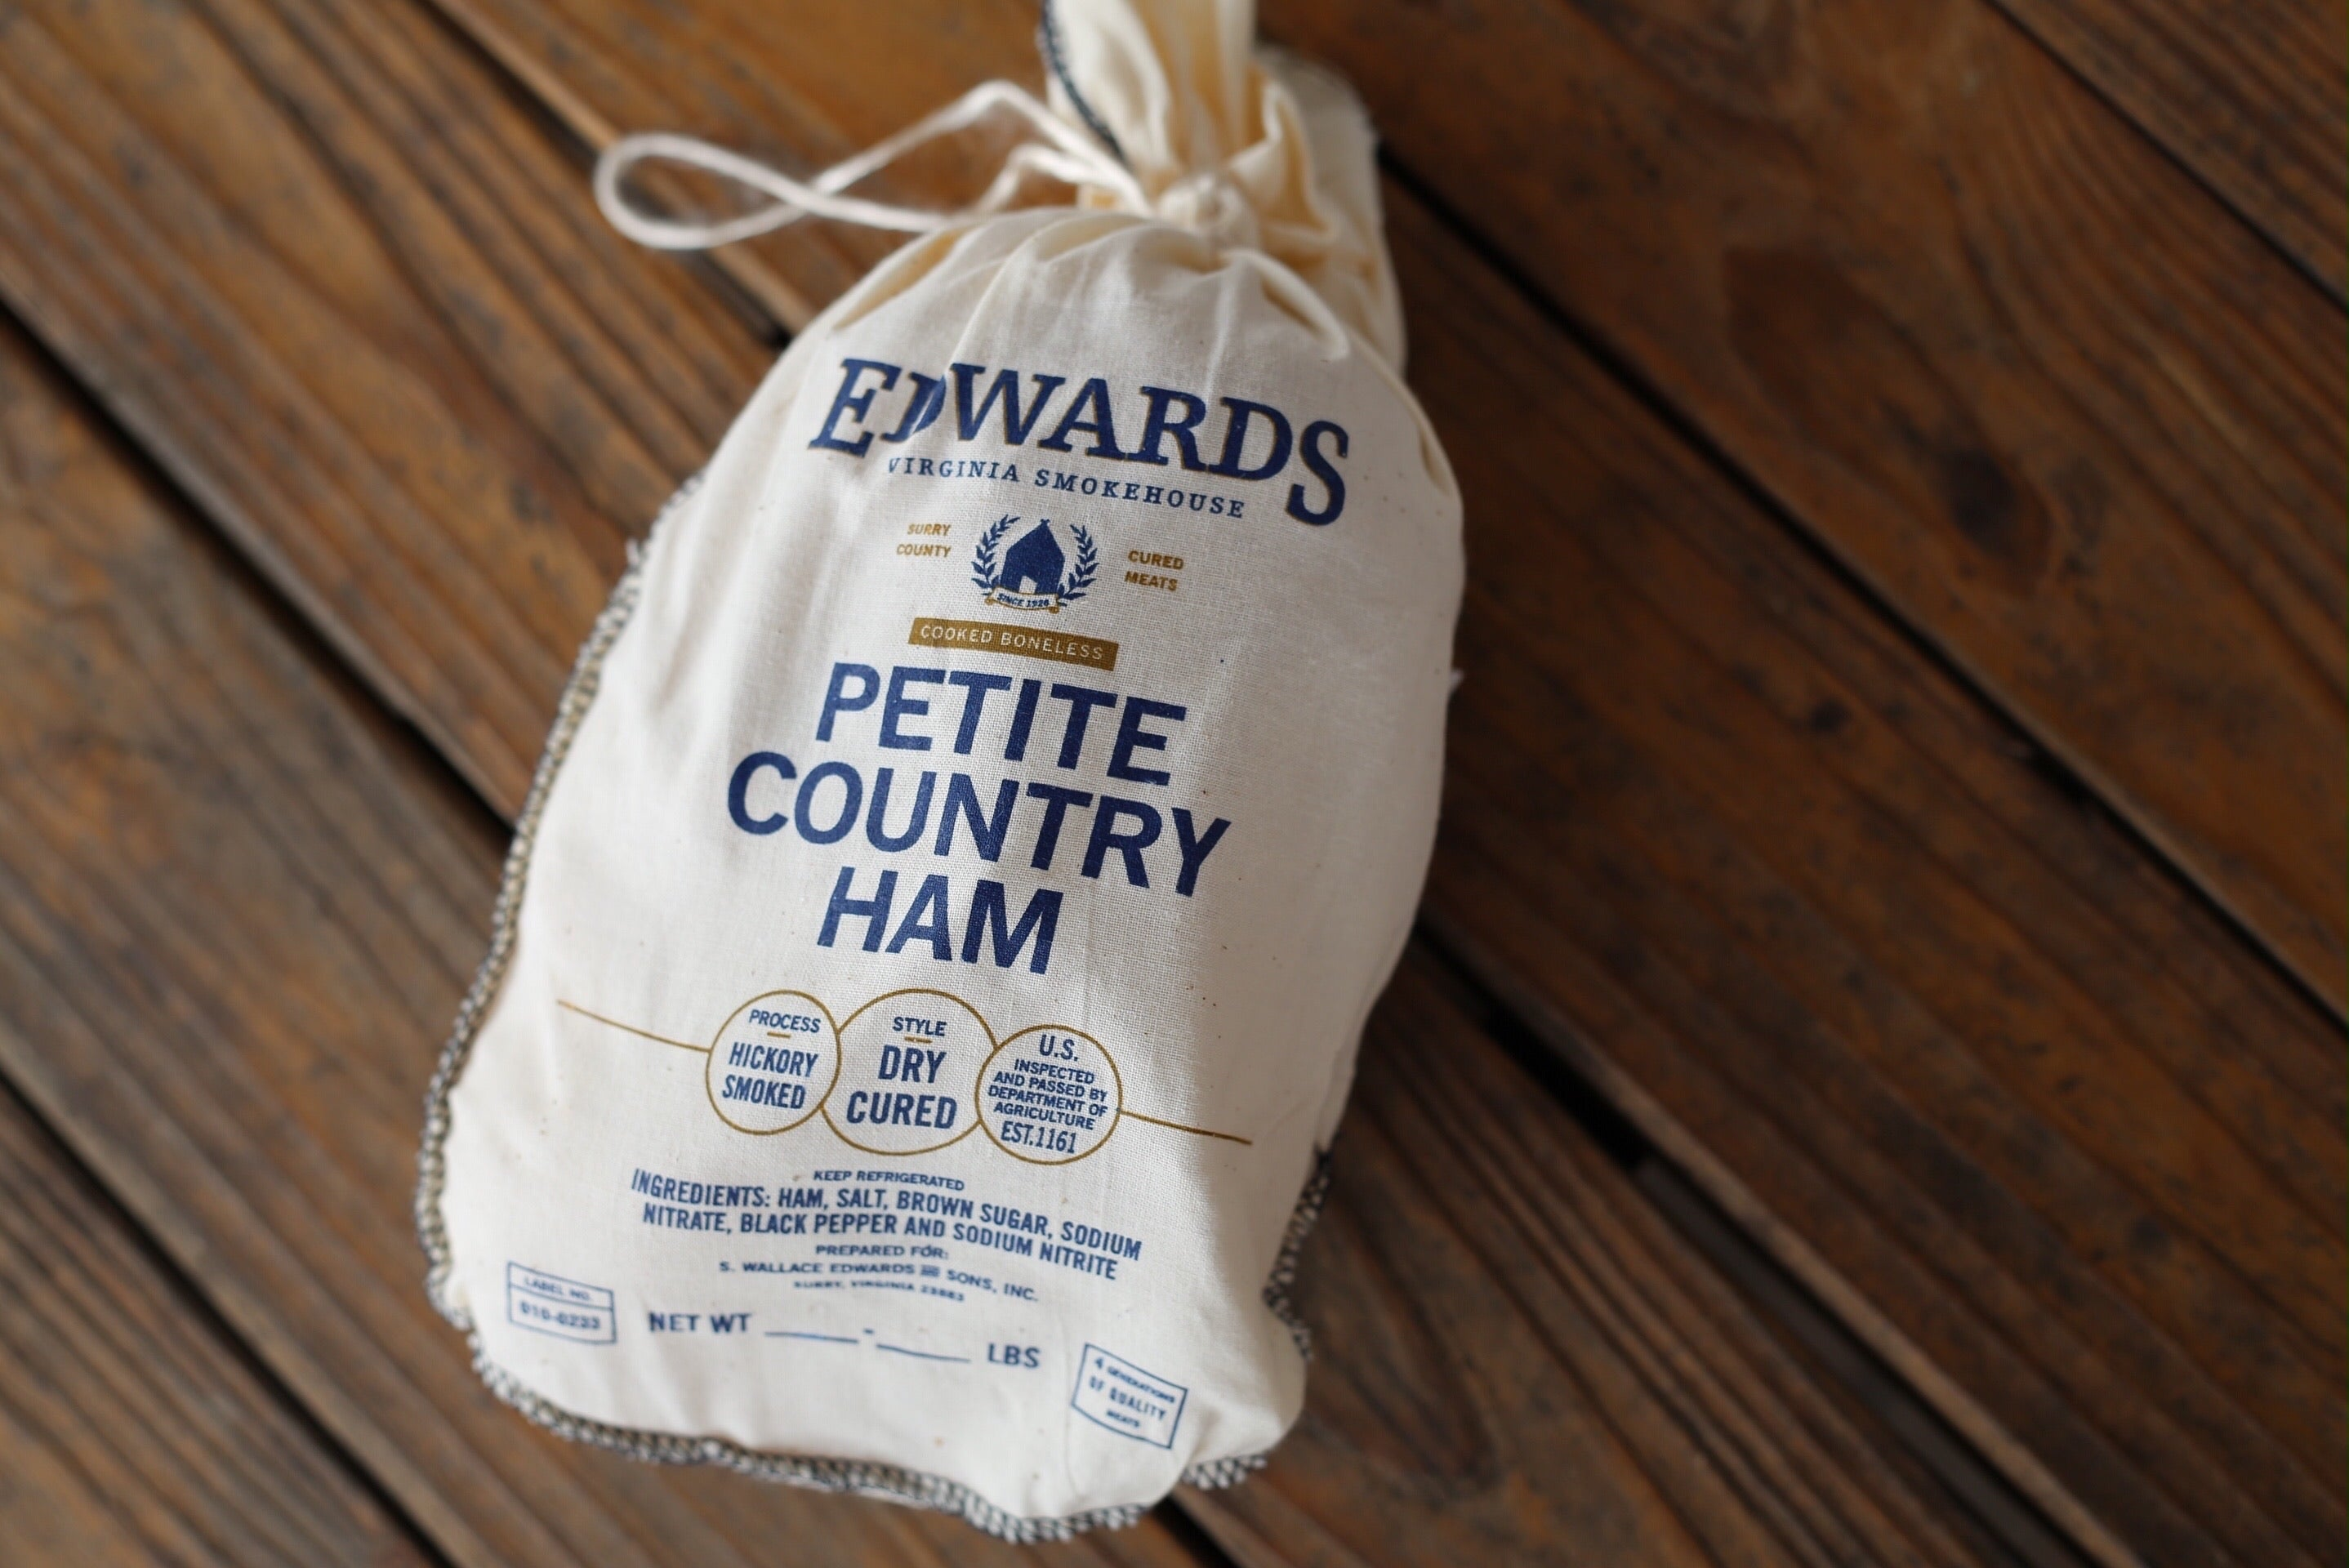 Edward's Virginia Smokehouse Petite Country Ham